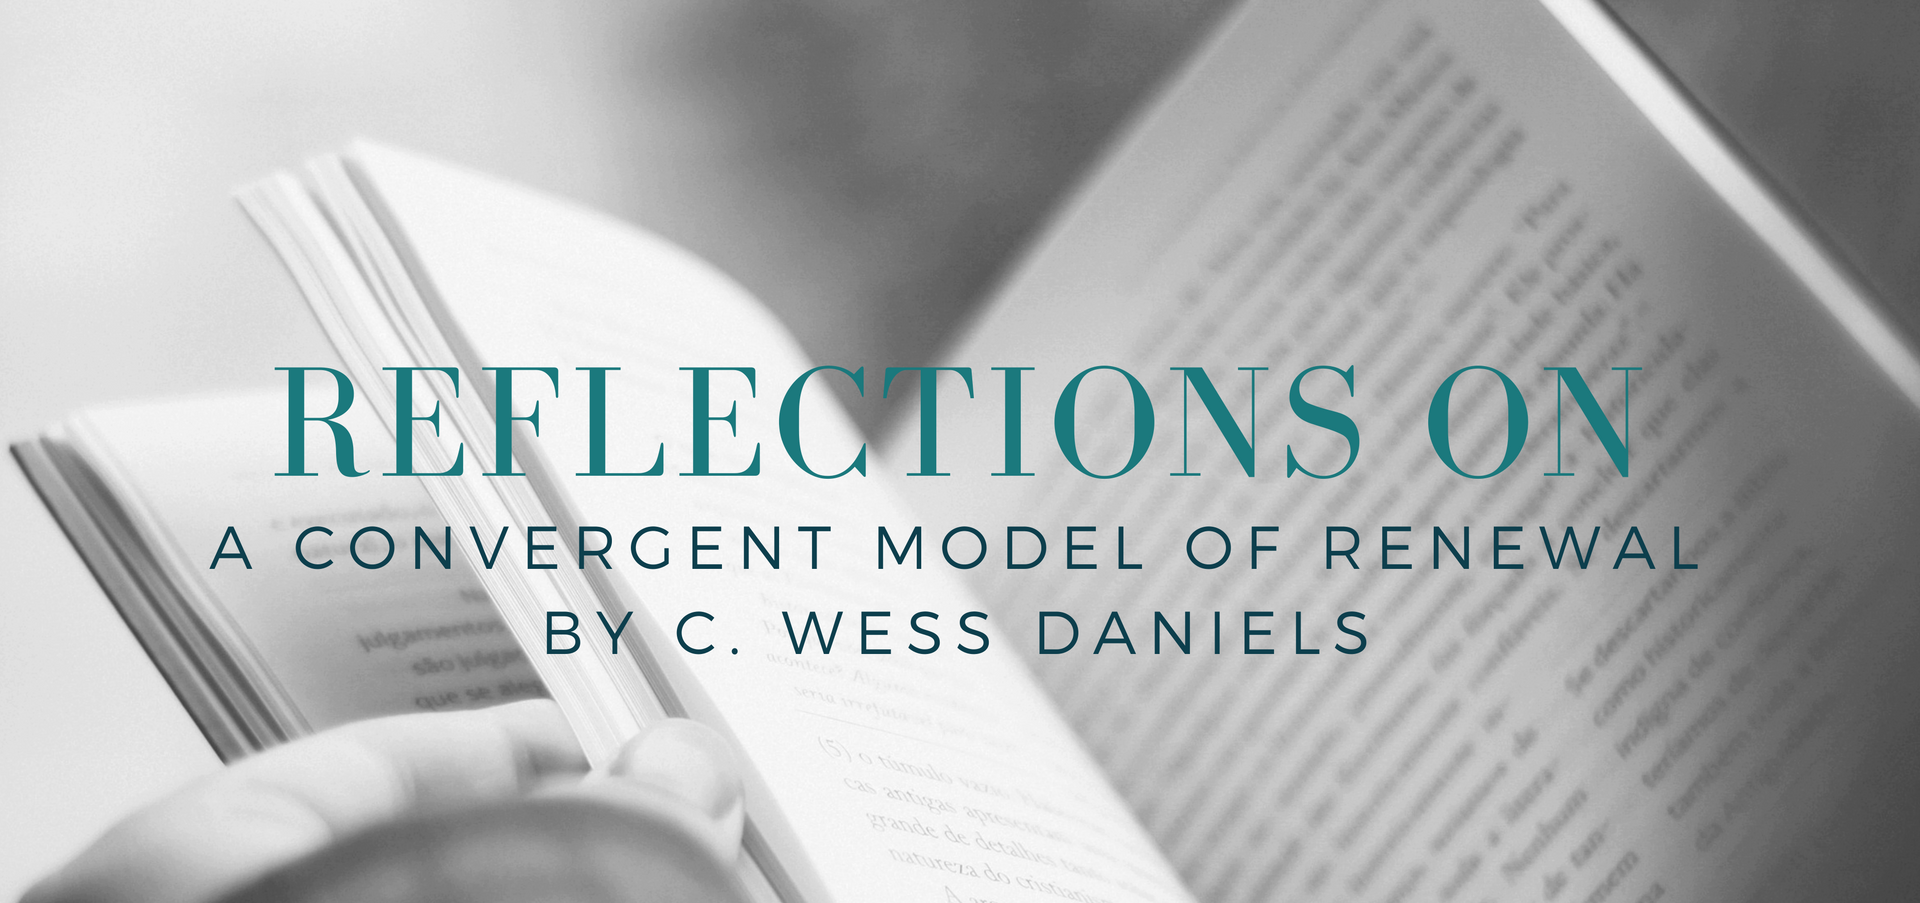 "Reflections on C Wess Daniel's ""A Convergent Model of Renewal"" - read on KateRaeDavis.com"